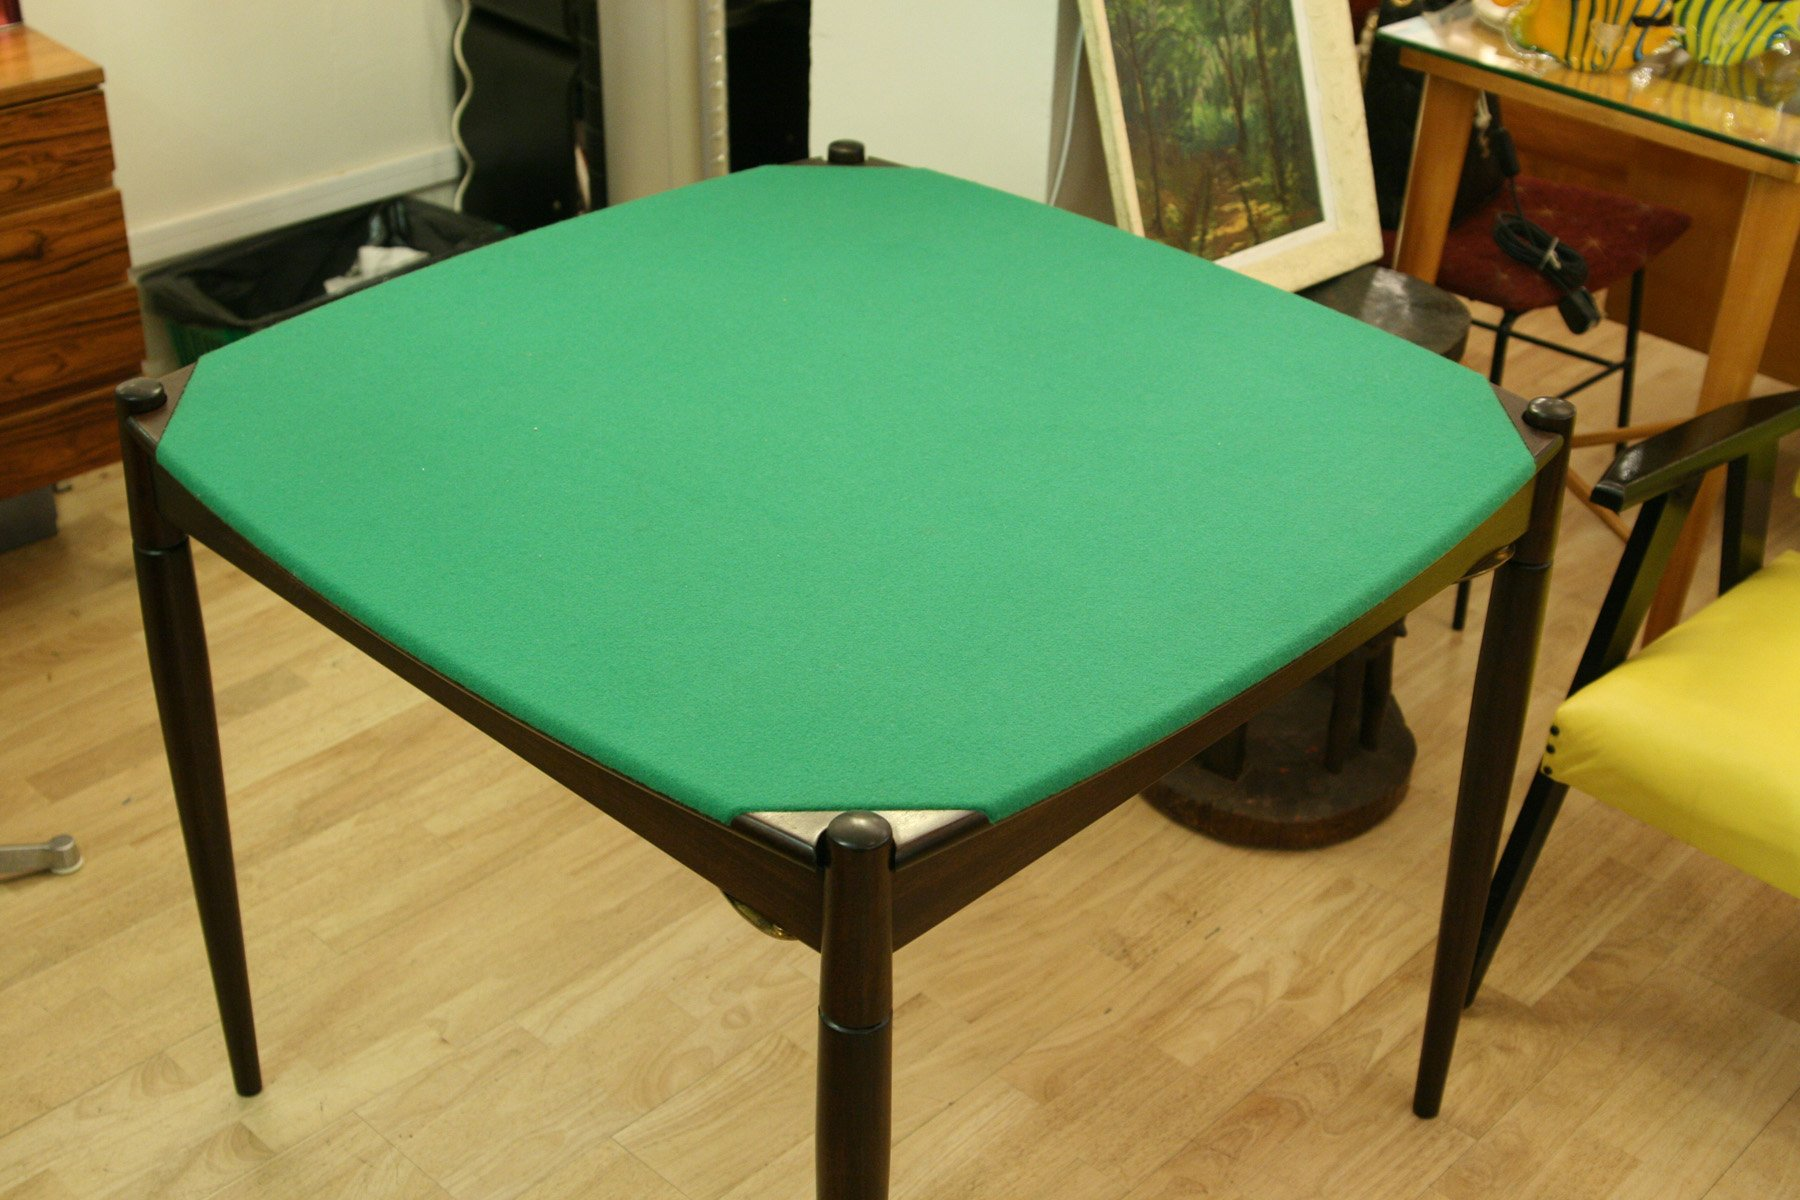 Vintage Poker or Dining Table by Gio Ponti for Fratelli Reguitti